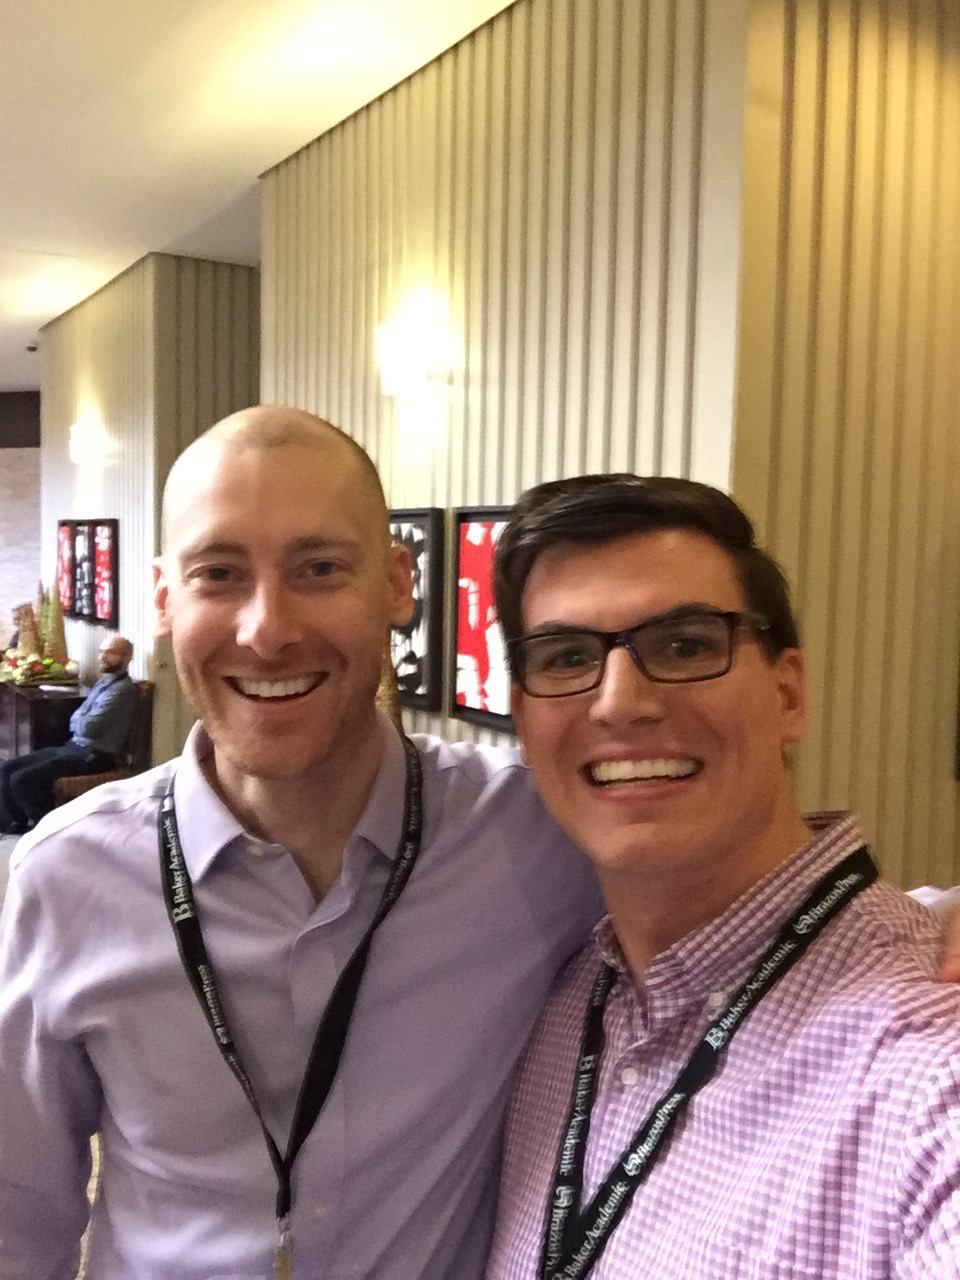 Had to grab a selfie with my friend, and Stand to Reason's newest apologist, Tim Barnett. If nothing else, it was our way of proving to our (pregnant) wives that we did indeed go to the conference.